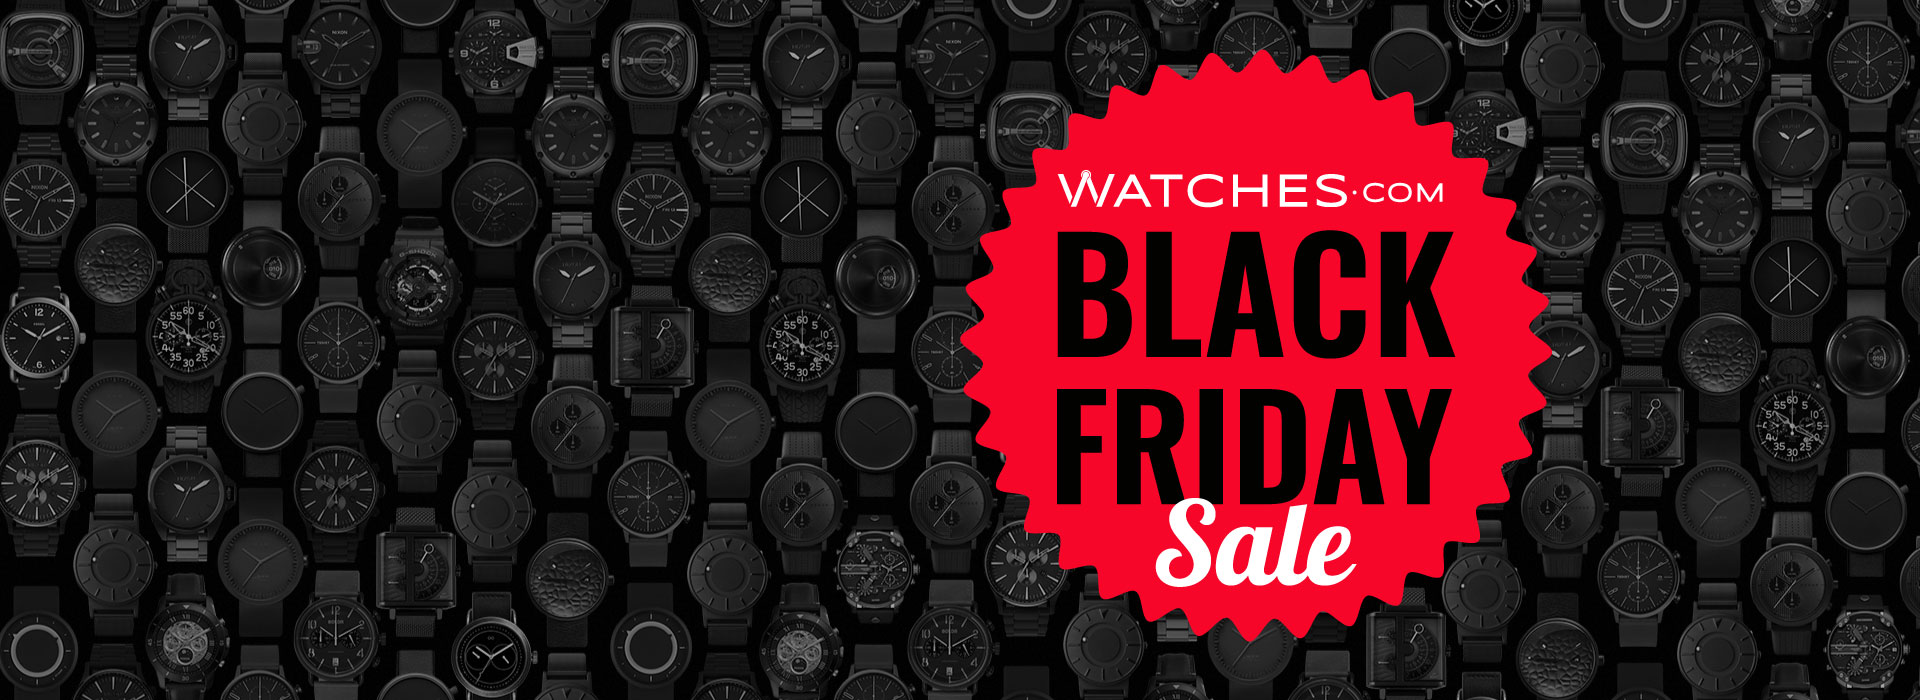 watches.com black friday 2017 sale